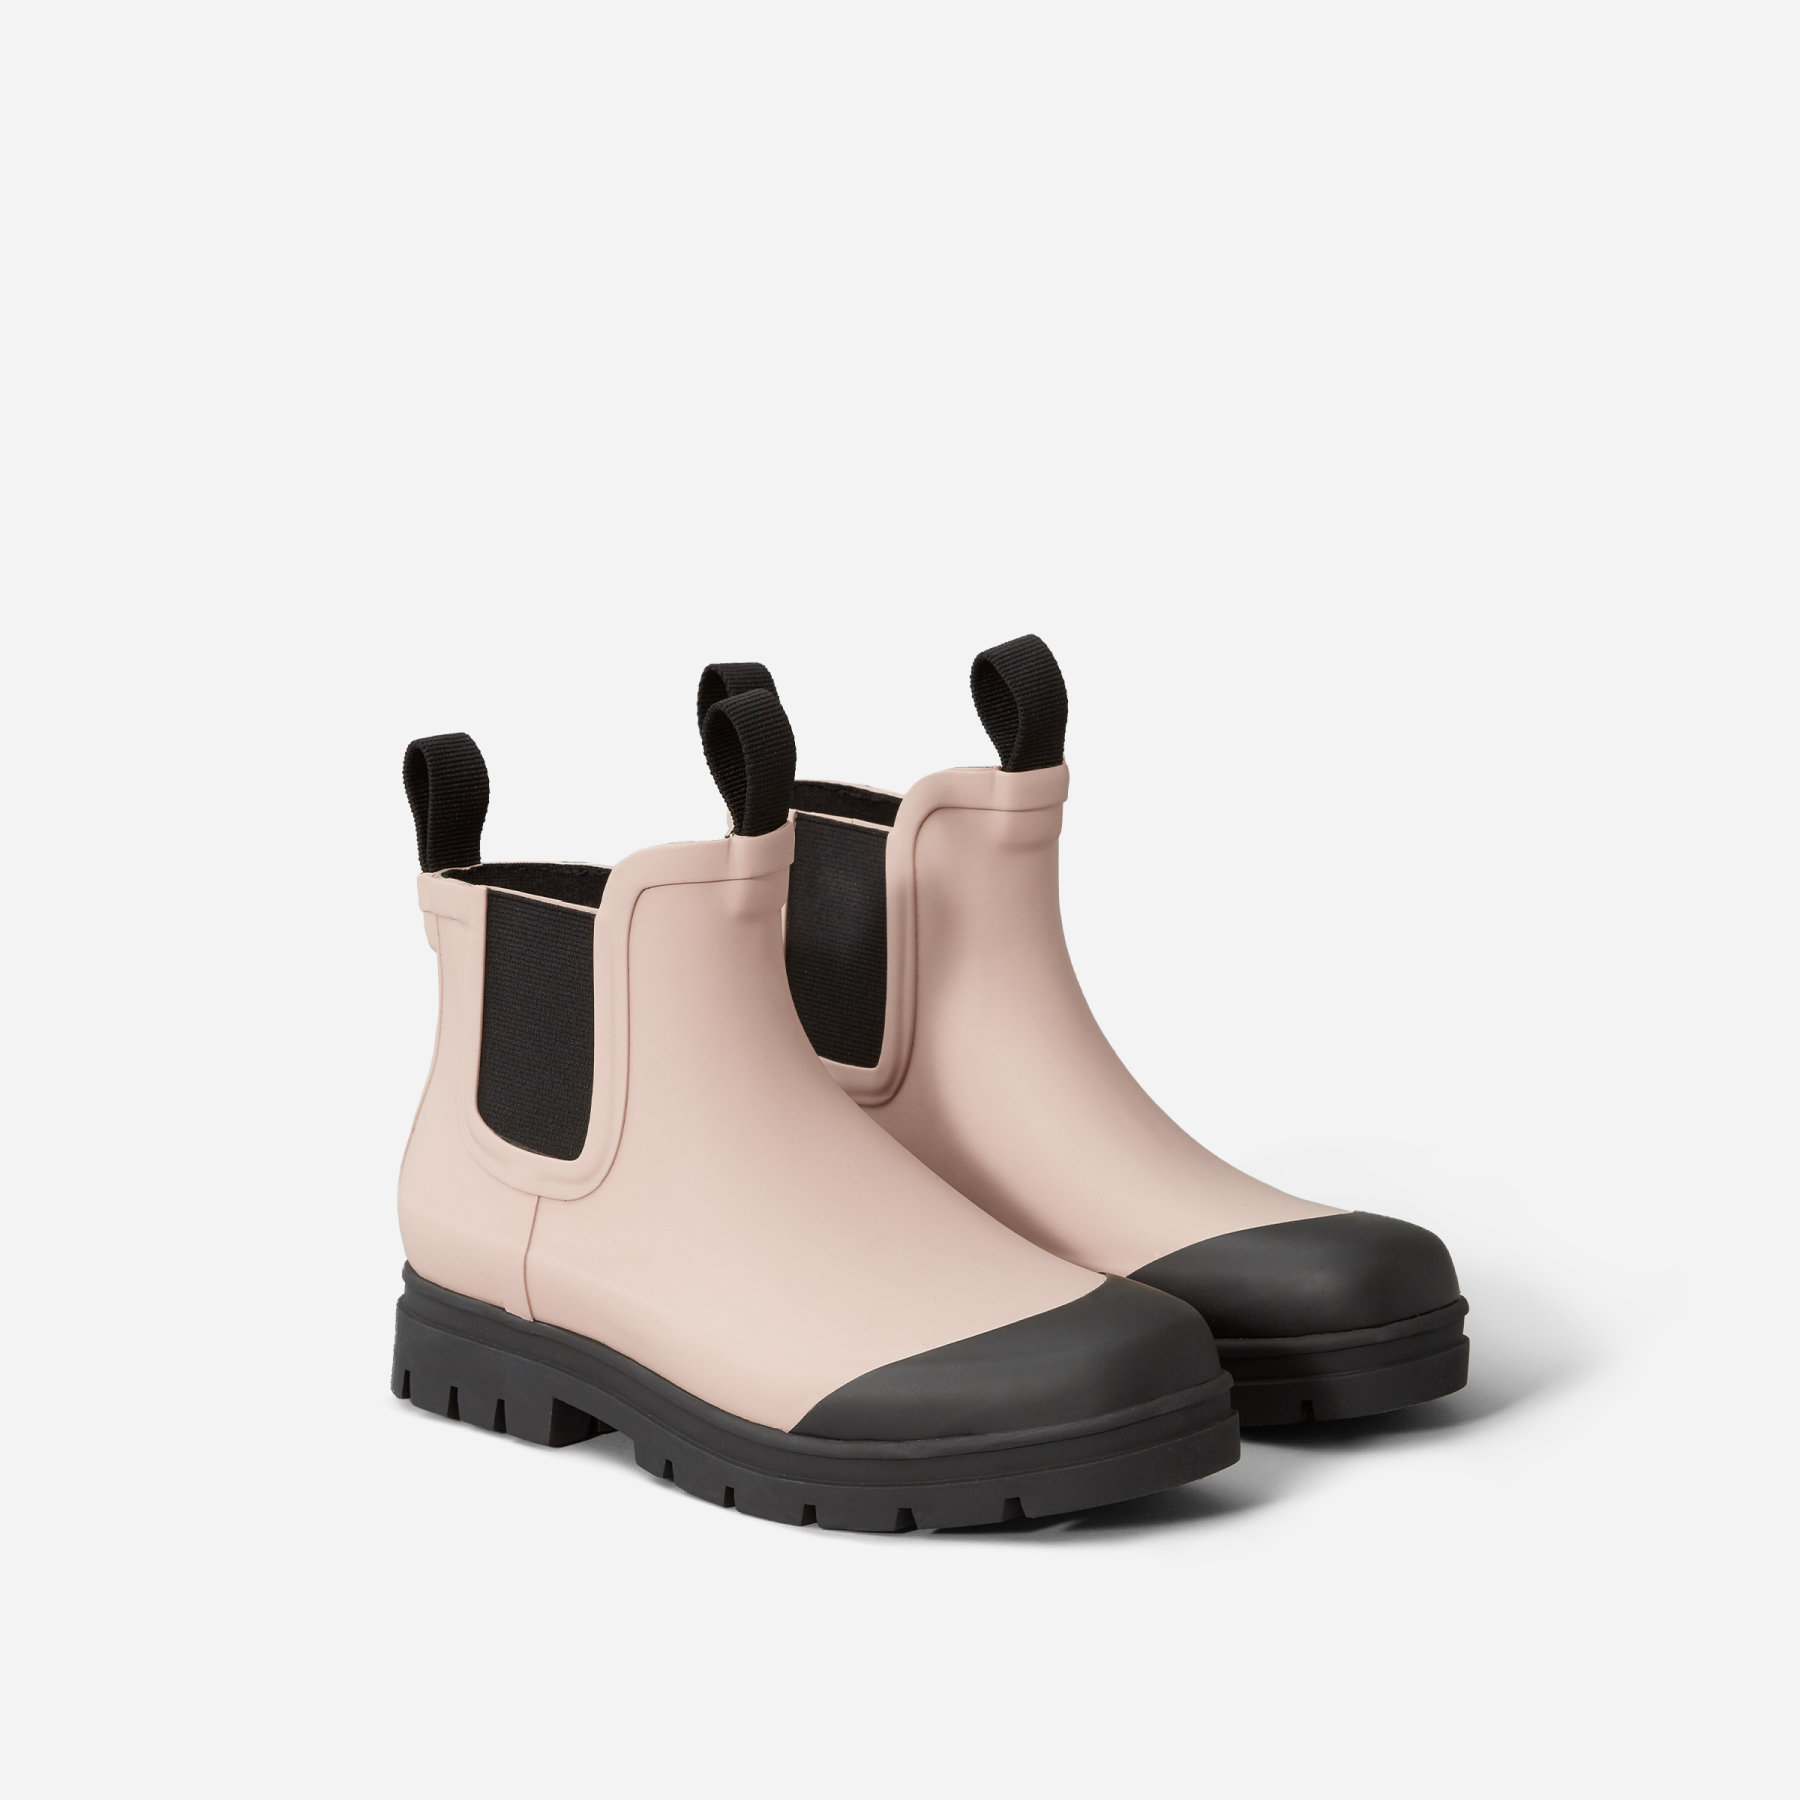 Everlane Rain Boot - It's not surprising that a LA native does not own rain boots or even an umbrella (thanks Mom for the loaner!), but after the second rain spell we've had this year, I'm beginning to see why they are good to have on hand. These new Everlane rain boots just dropped today and I already scooped up this pink pair!